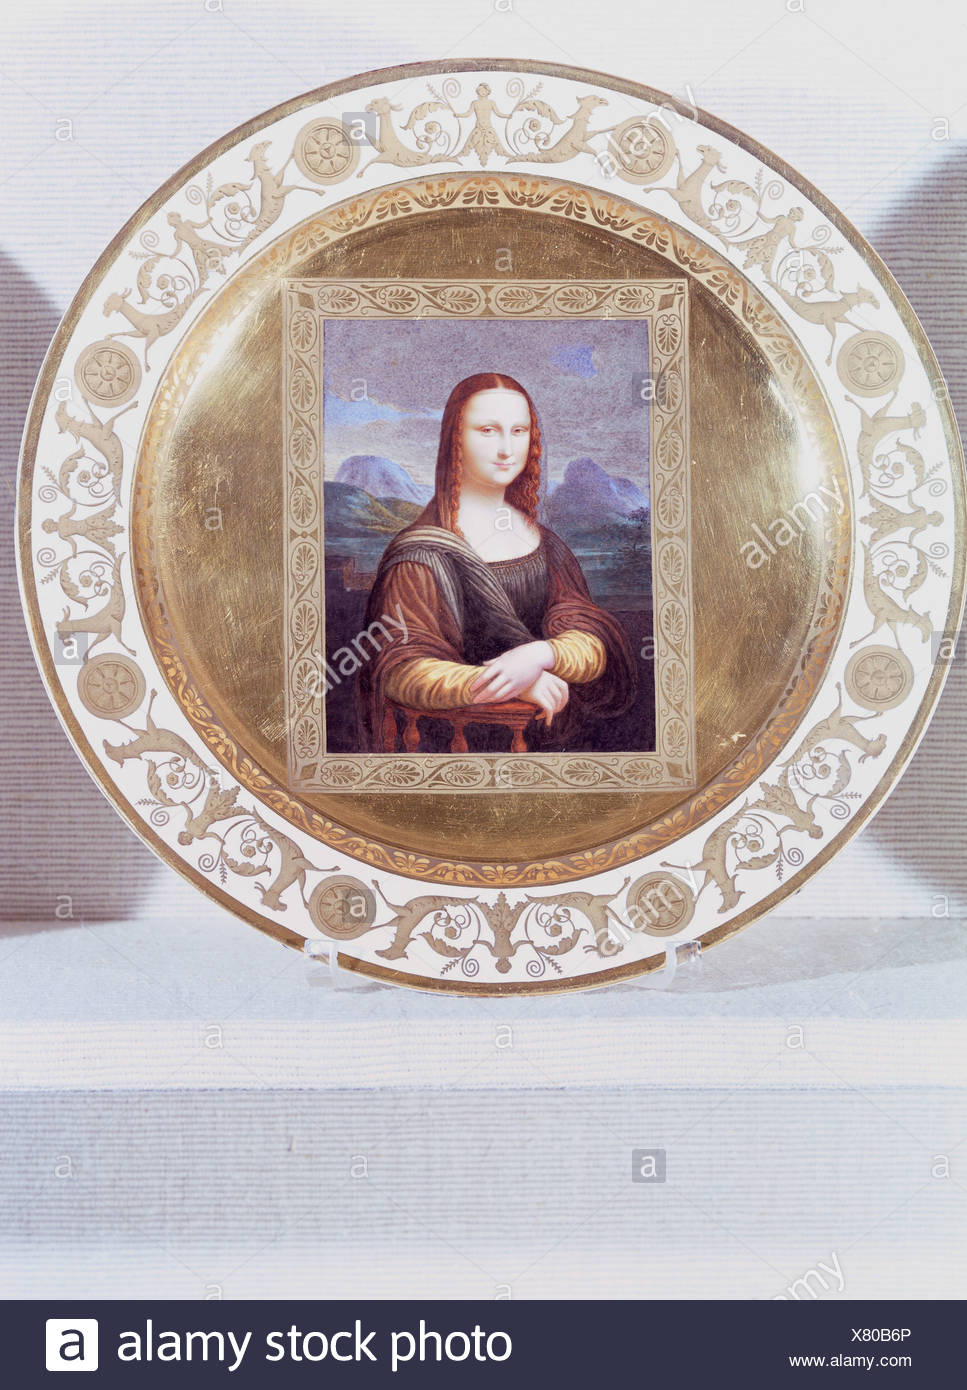 "fine arts, porcelain, plate, series with gold plating, ""Mona Lisa"", based on Leonardo da Vinci (1452 - 1519), Nymphenburg Porcelain Manufactory, Germany, early 19th century, Munich Residence, porcelain collection, Artist's Copyright has not to be cleared Stock Photo"